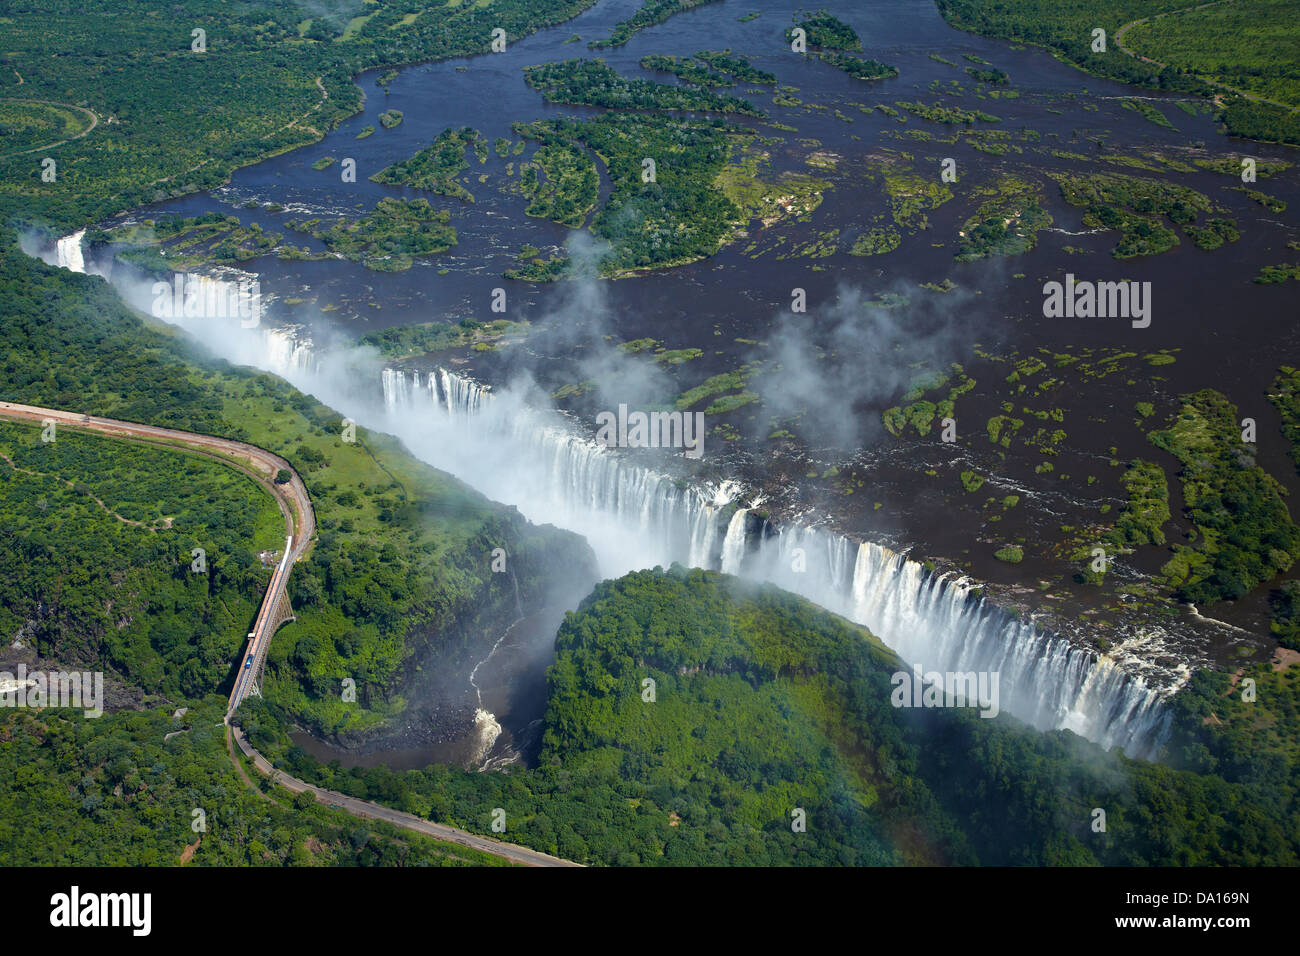 Victoria Falls or 'Mosi-oa-Tunya' (The Smoke that Thunders), Zambezi River, and Victoria Falls Bridge, Zimbabwe - Stock Image